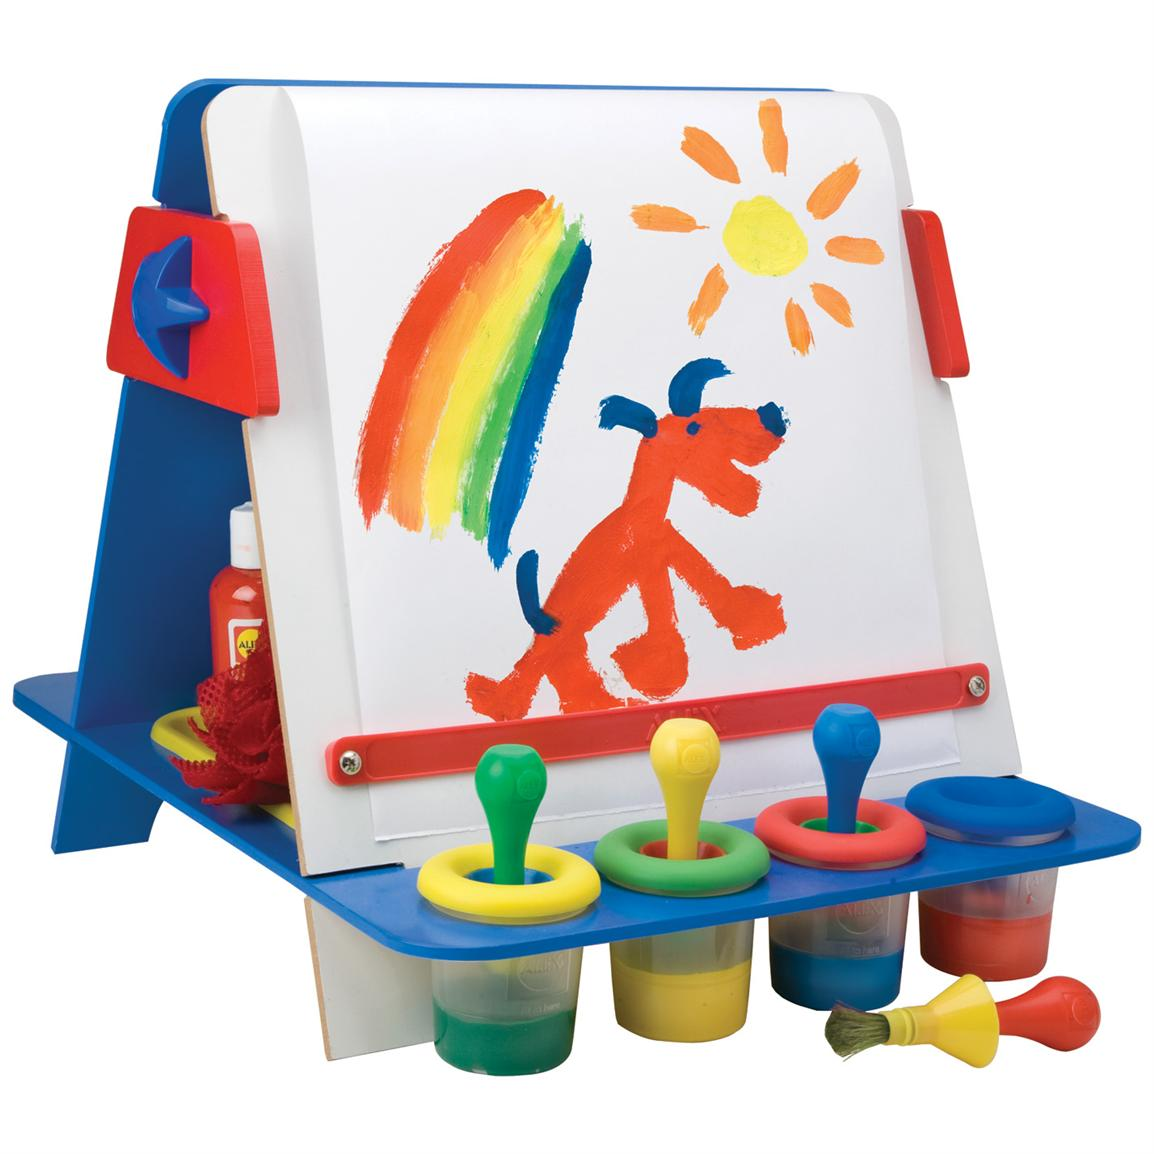 Children's My Tabletop Easel from Alex®